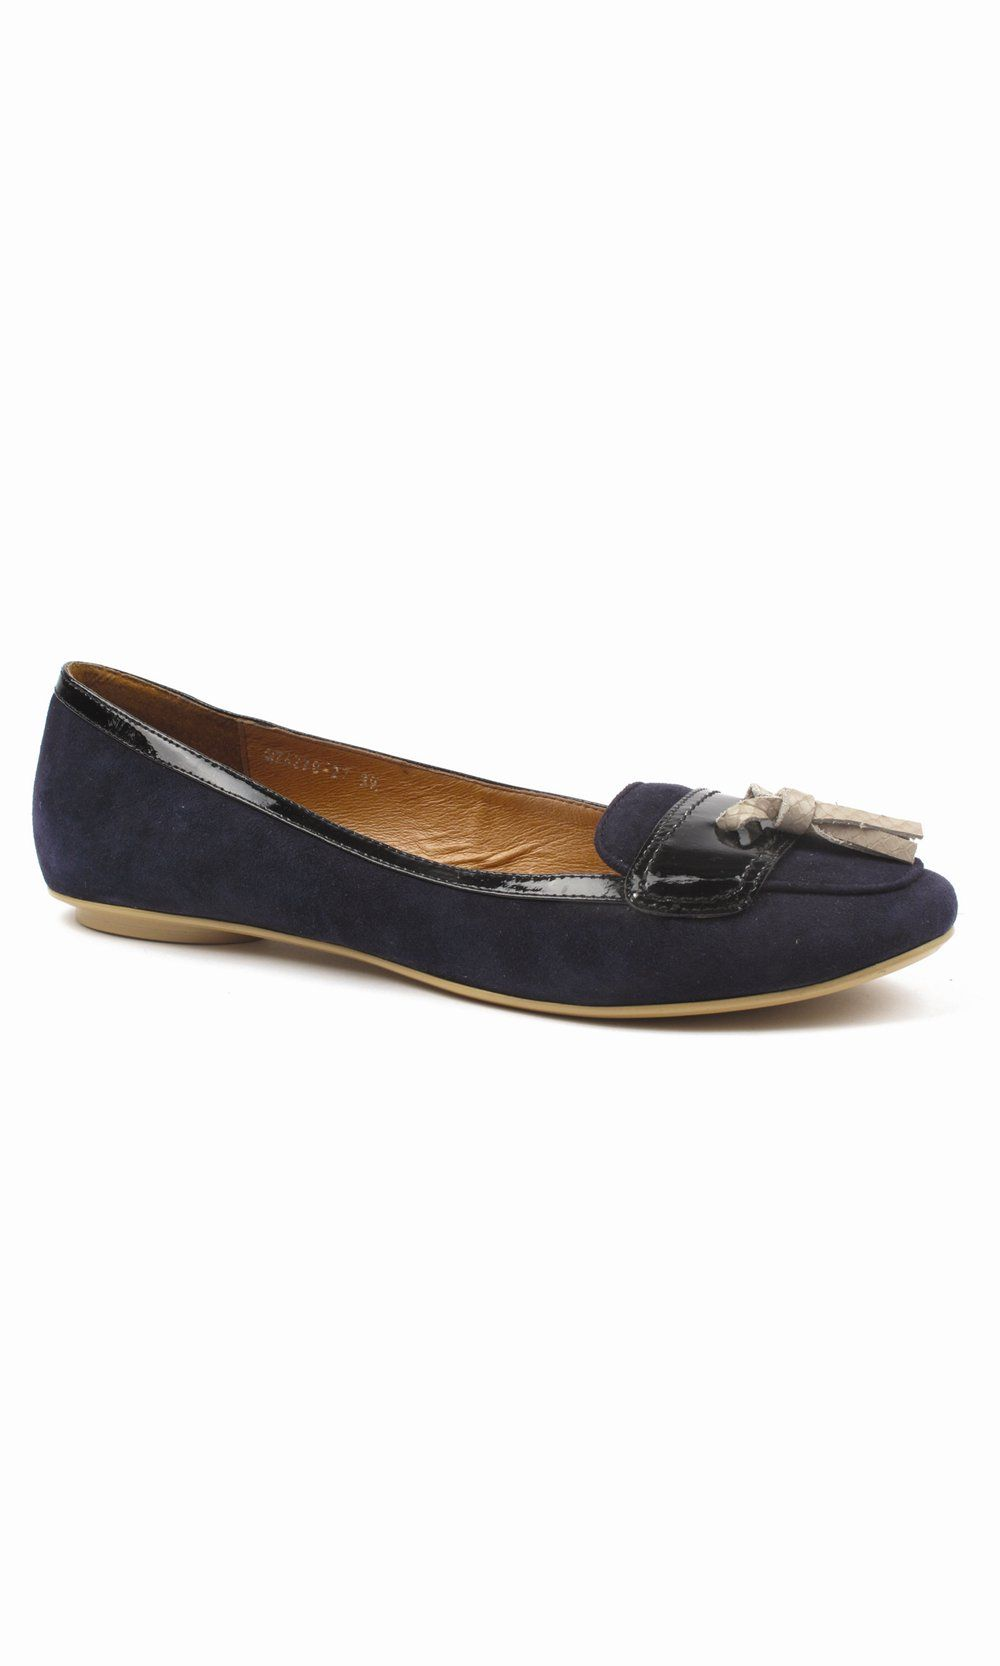 Kathryn Wilson- Marston Loafer (I want these so badly)